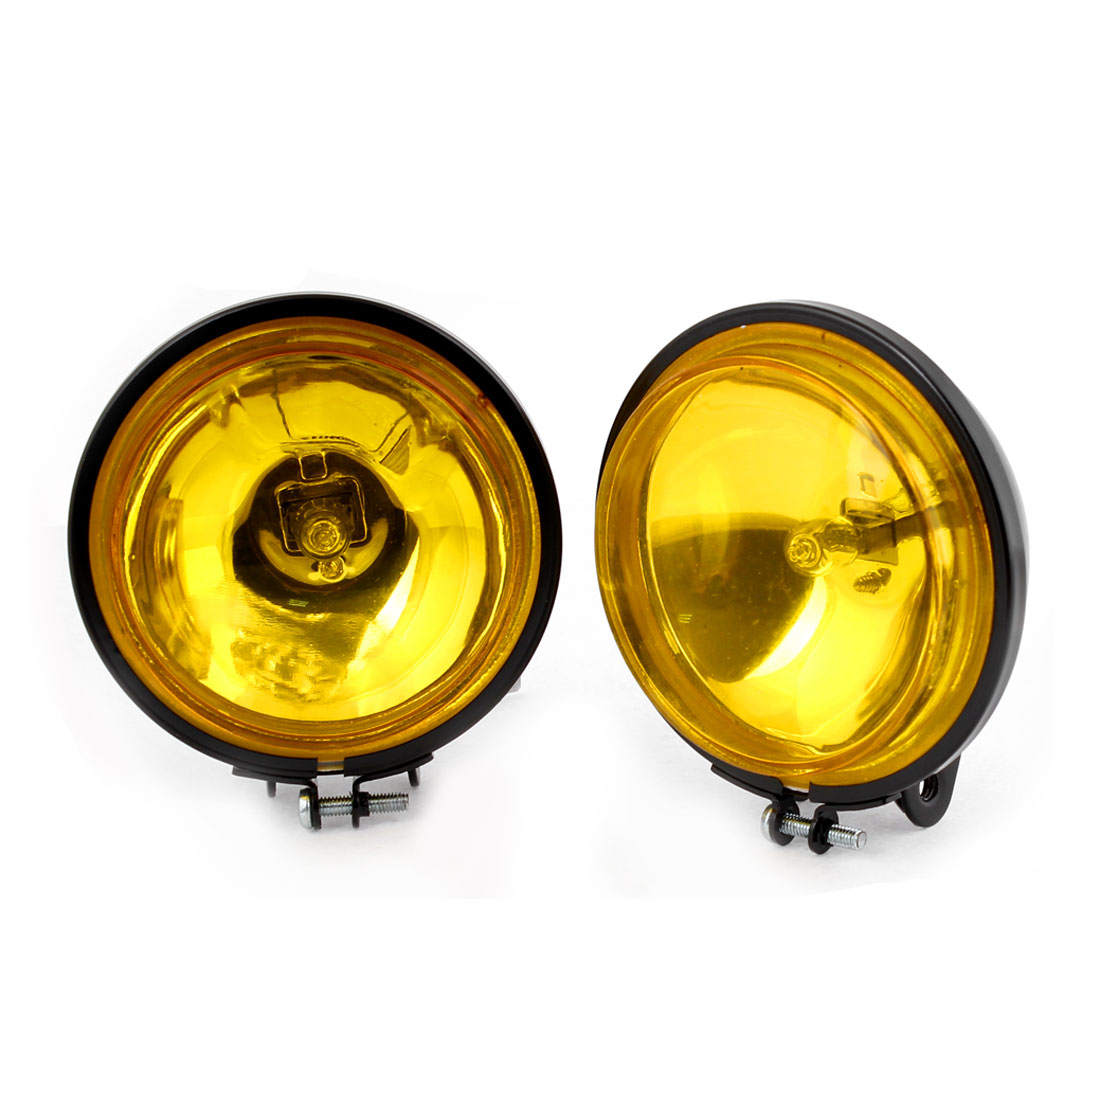 Metal Bracket DC 12V 55W H3 Yellow Led Light Car Round Fog Light 2 Pcs